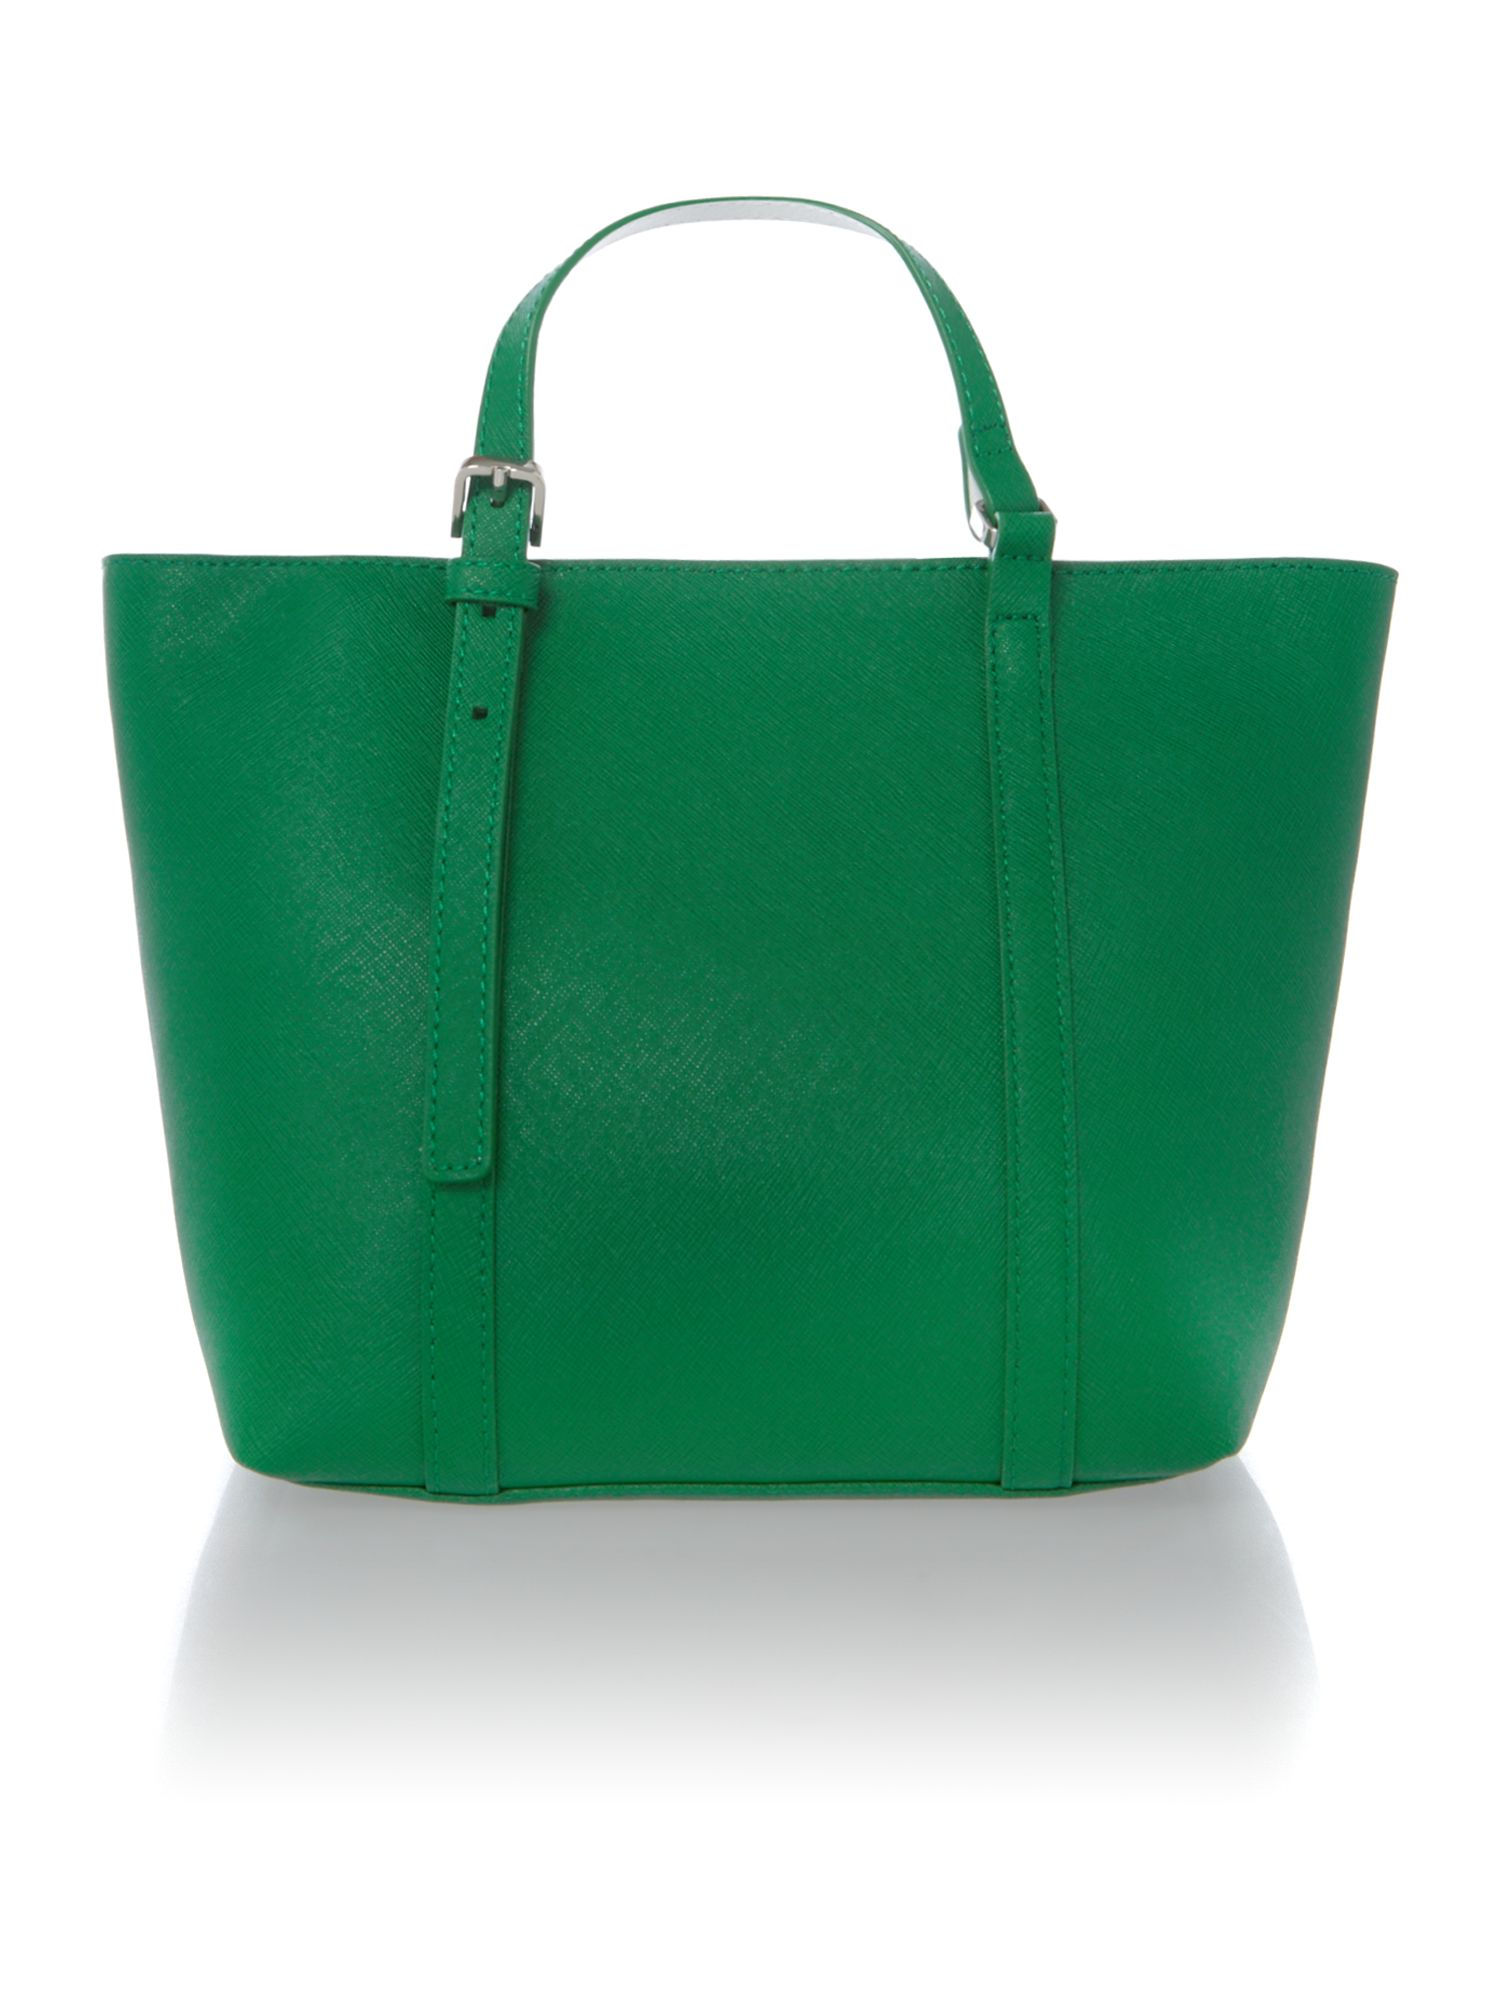 Sofie green small tote bag